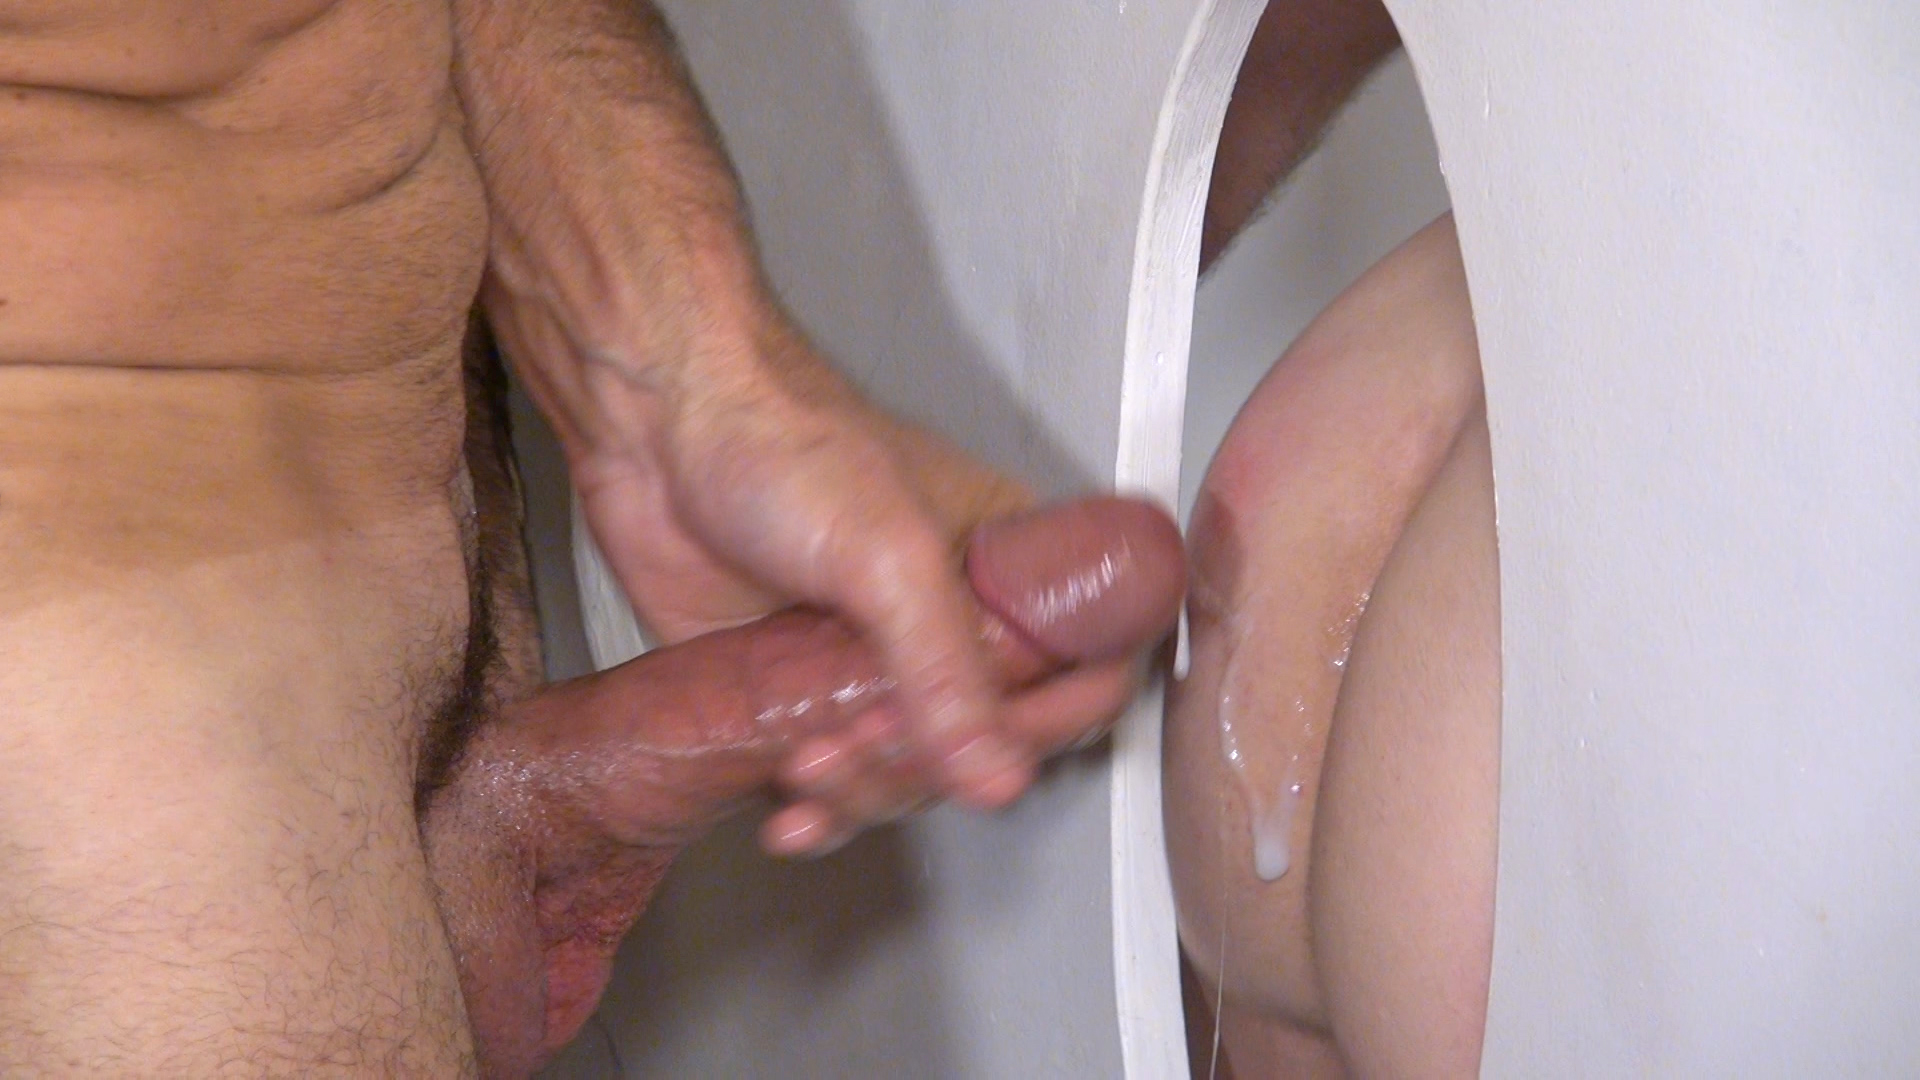 from Jamal gay glory hole videos free